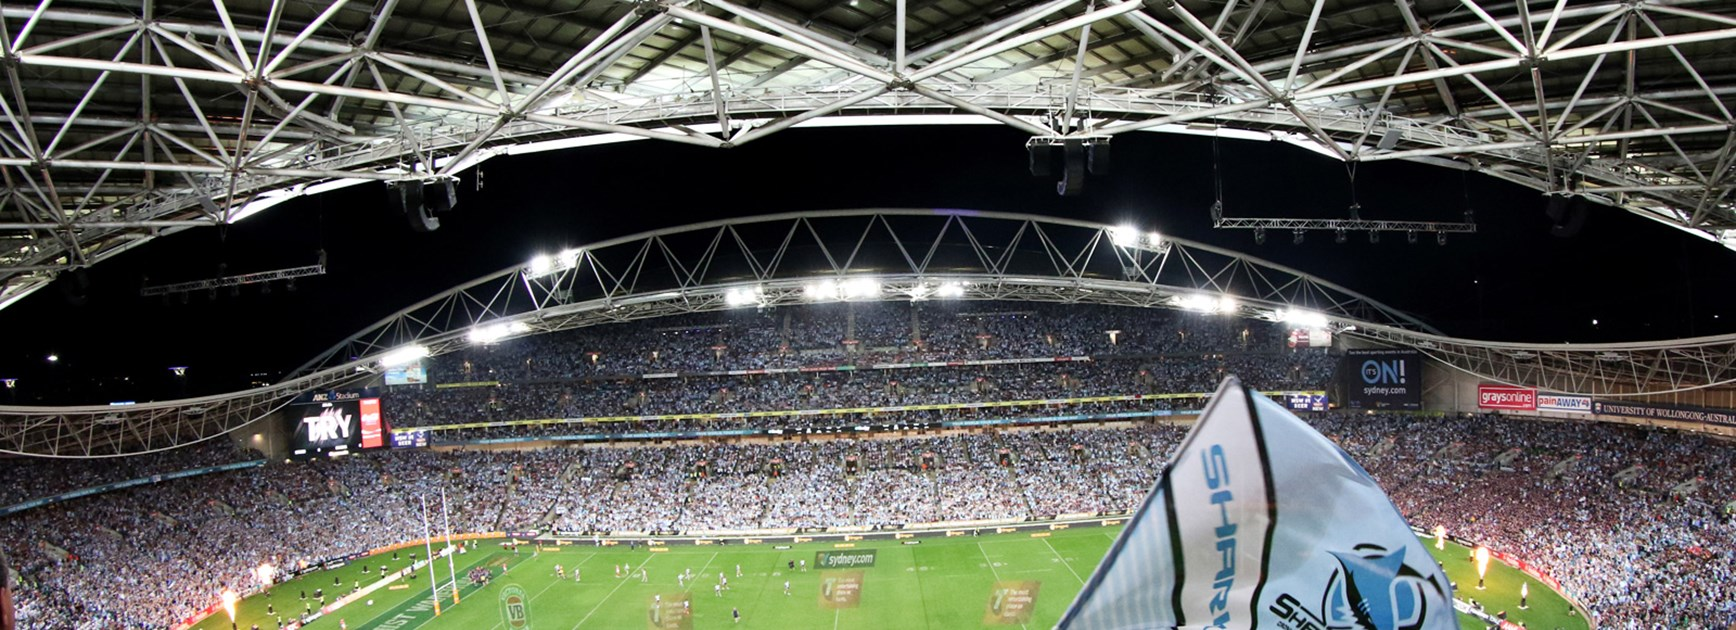 The crowd at the 2016 NRL Grand Final.